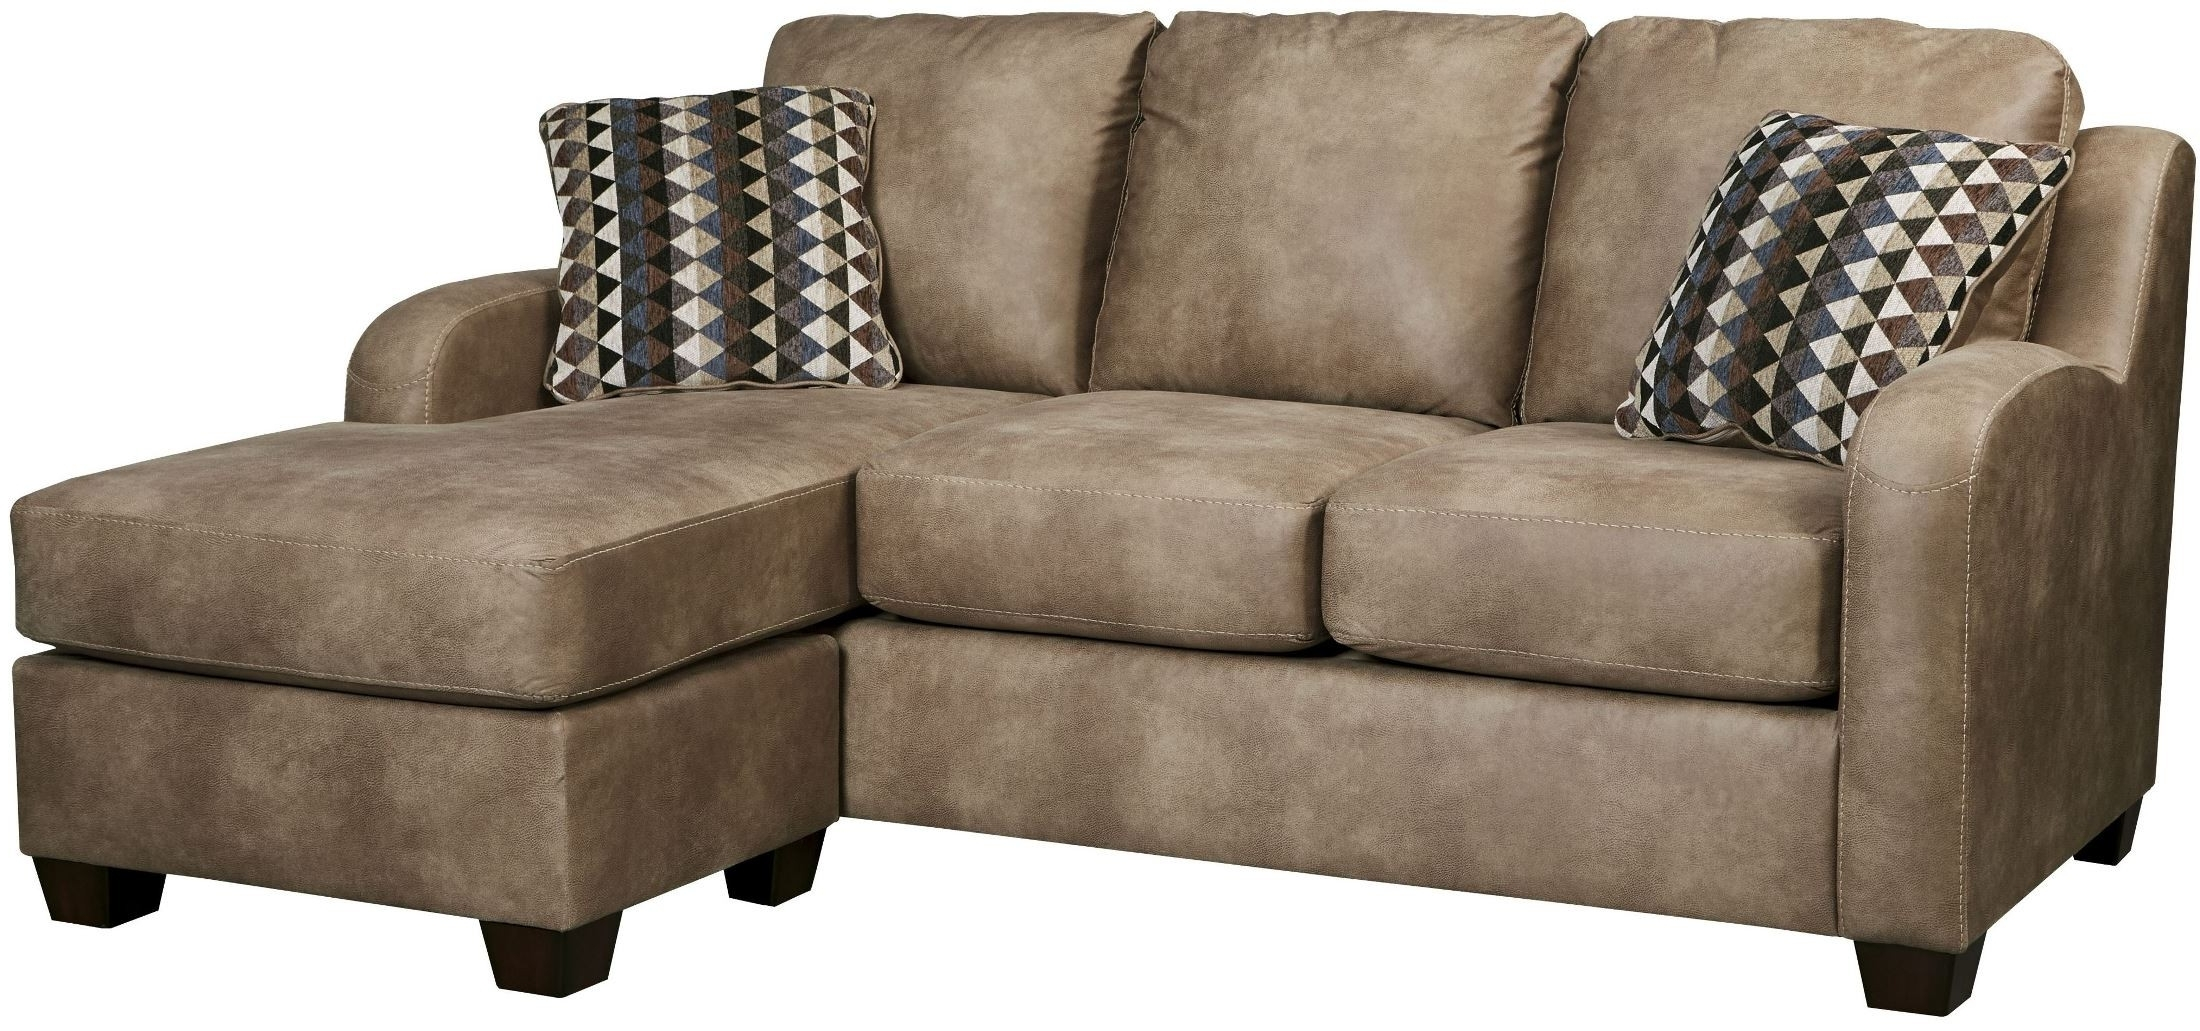 Trendy Ashley Chaise Sofas With Alturo Dune Sofa Chaise From Ashley (6000318) (View 13 of 15)